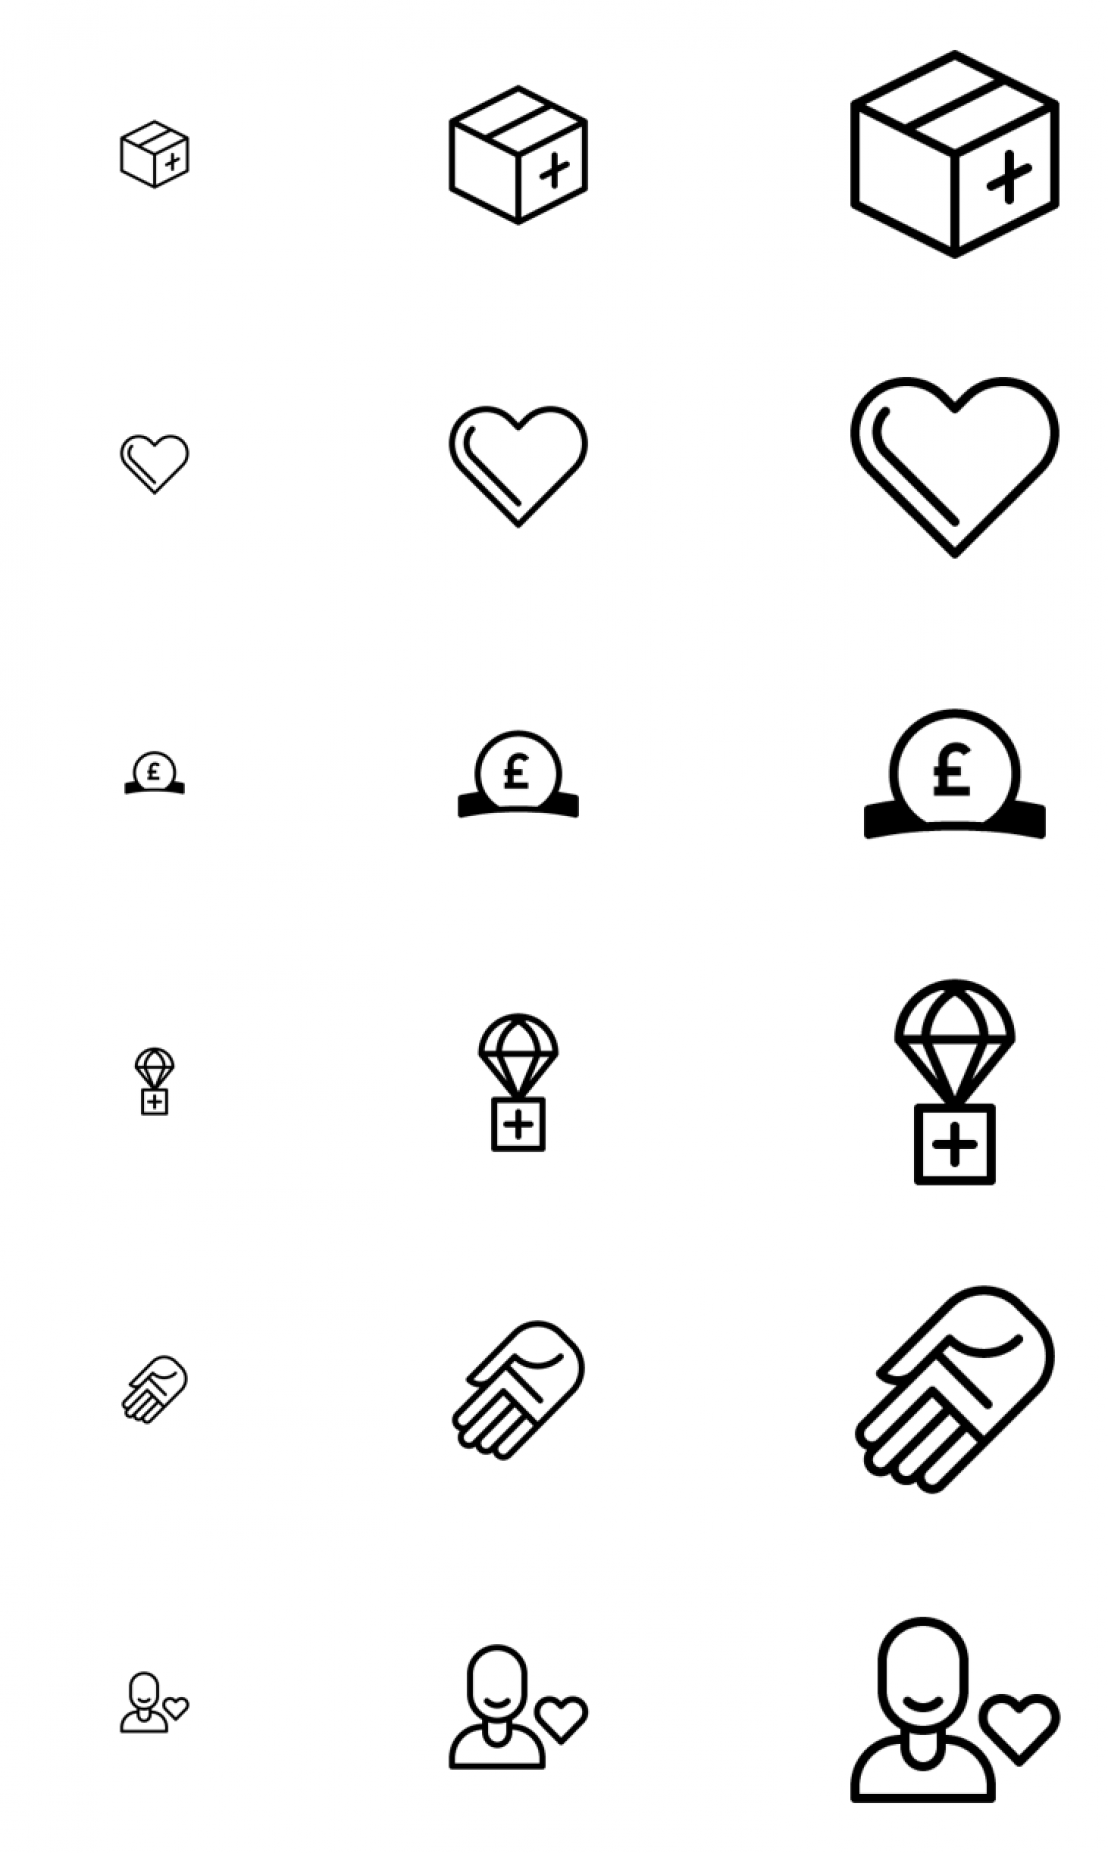 Charity icons on a white background